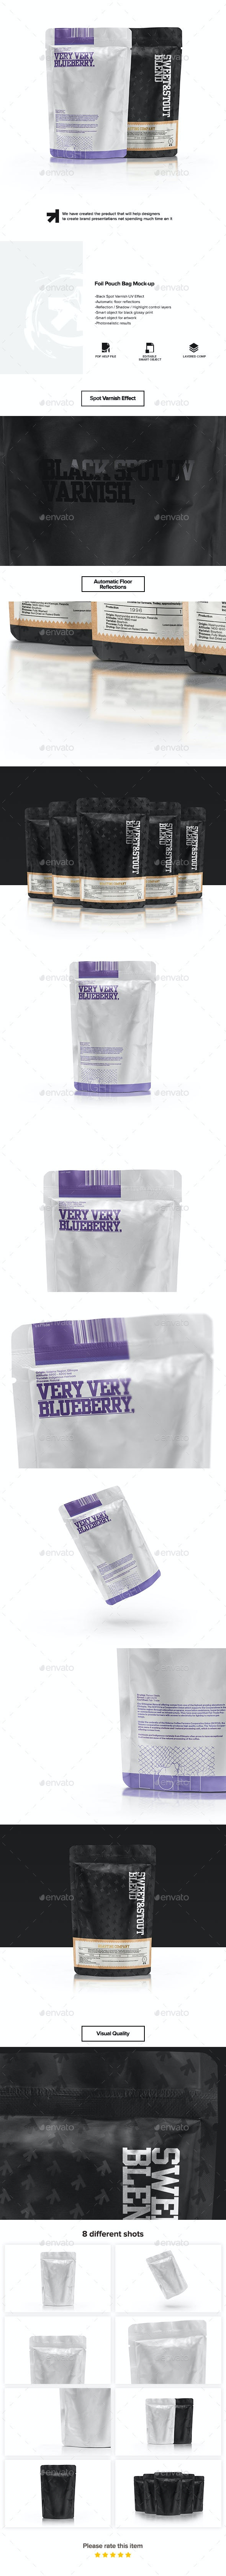 Foil Pouch Bag Mock-up - Food and Drink Packaging